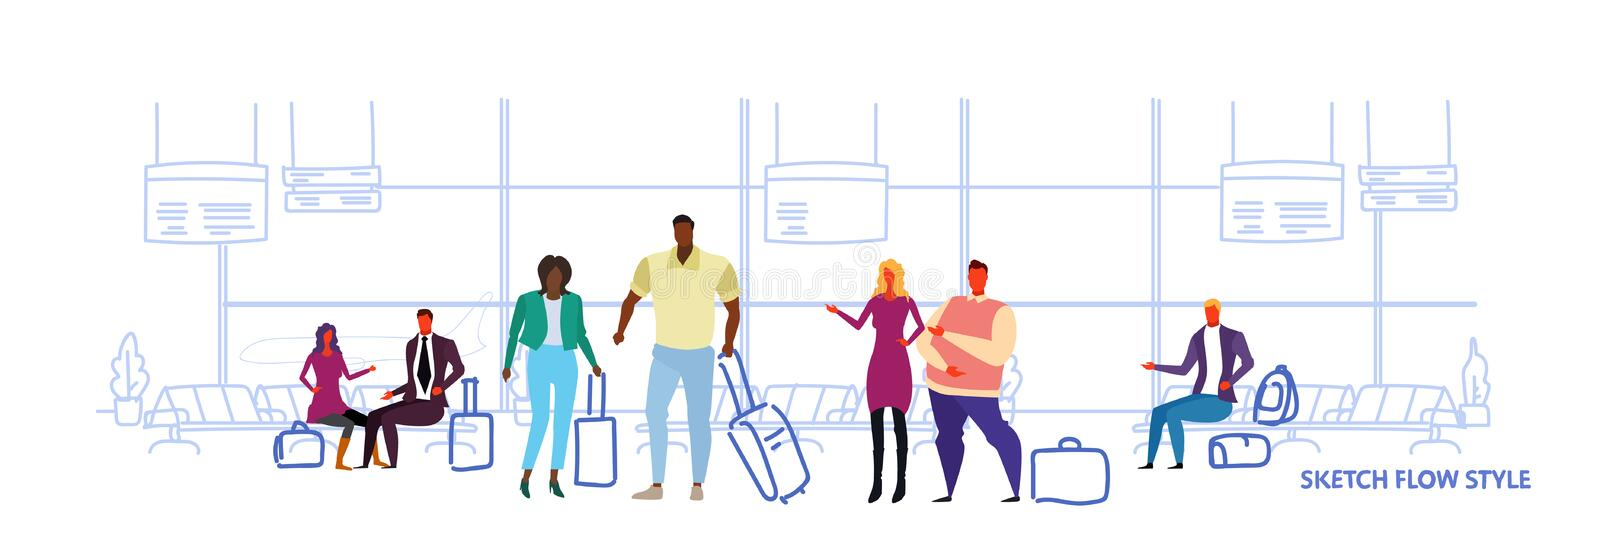 Business people travelers standing in airport waiting hall departure lounge interior mix race passengers waiting with. Baggage sketch flow style horizontal royalty free illustration